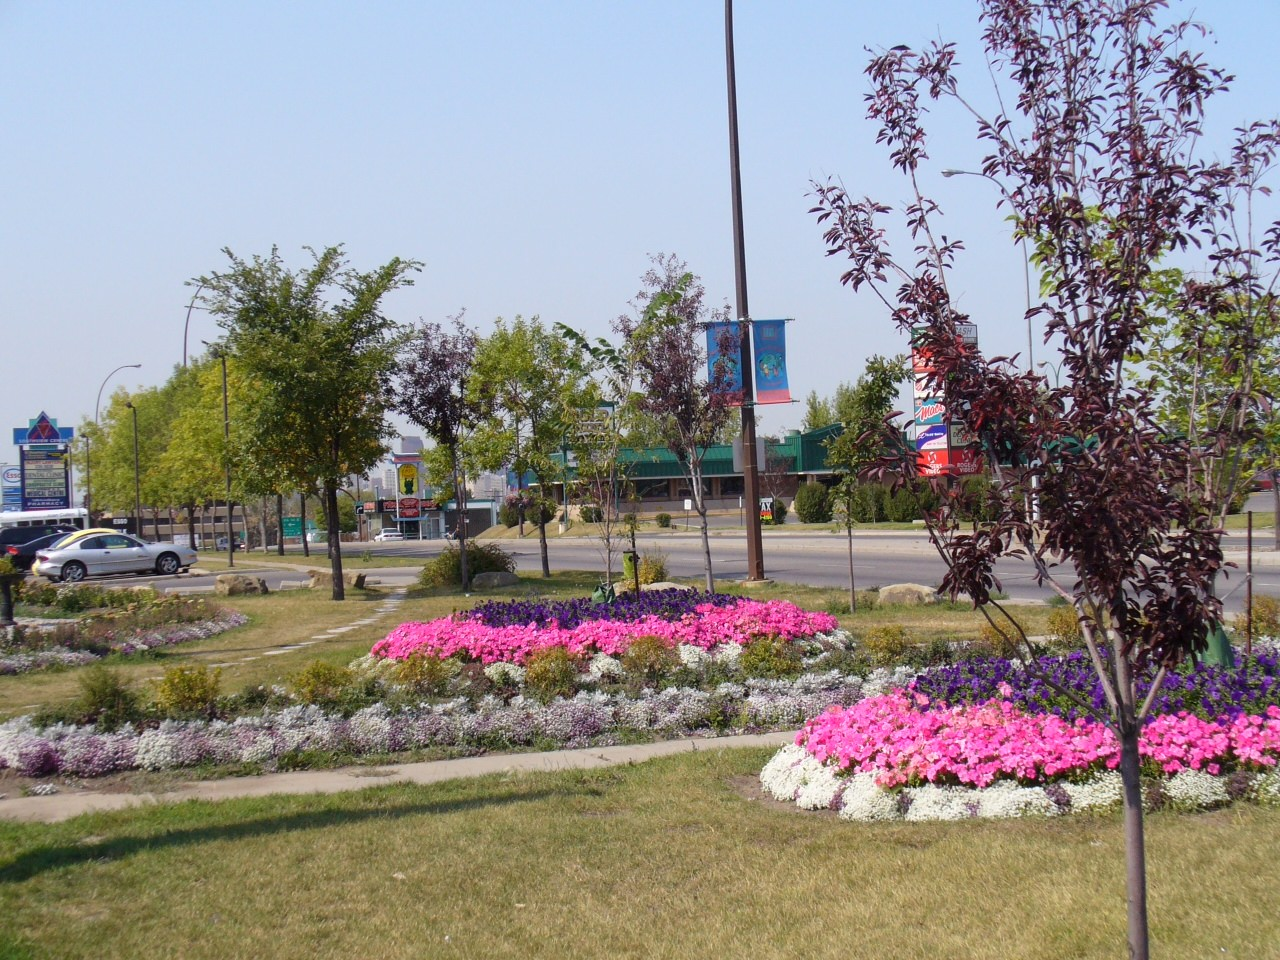 Unity Park is just one of the many improvements the International Avenue BRZ has spear headed since its inception.